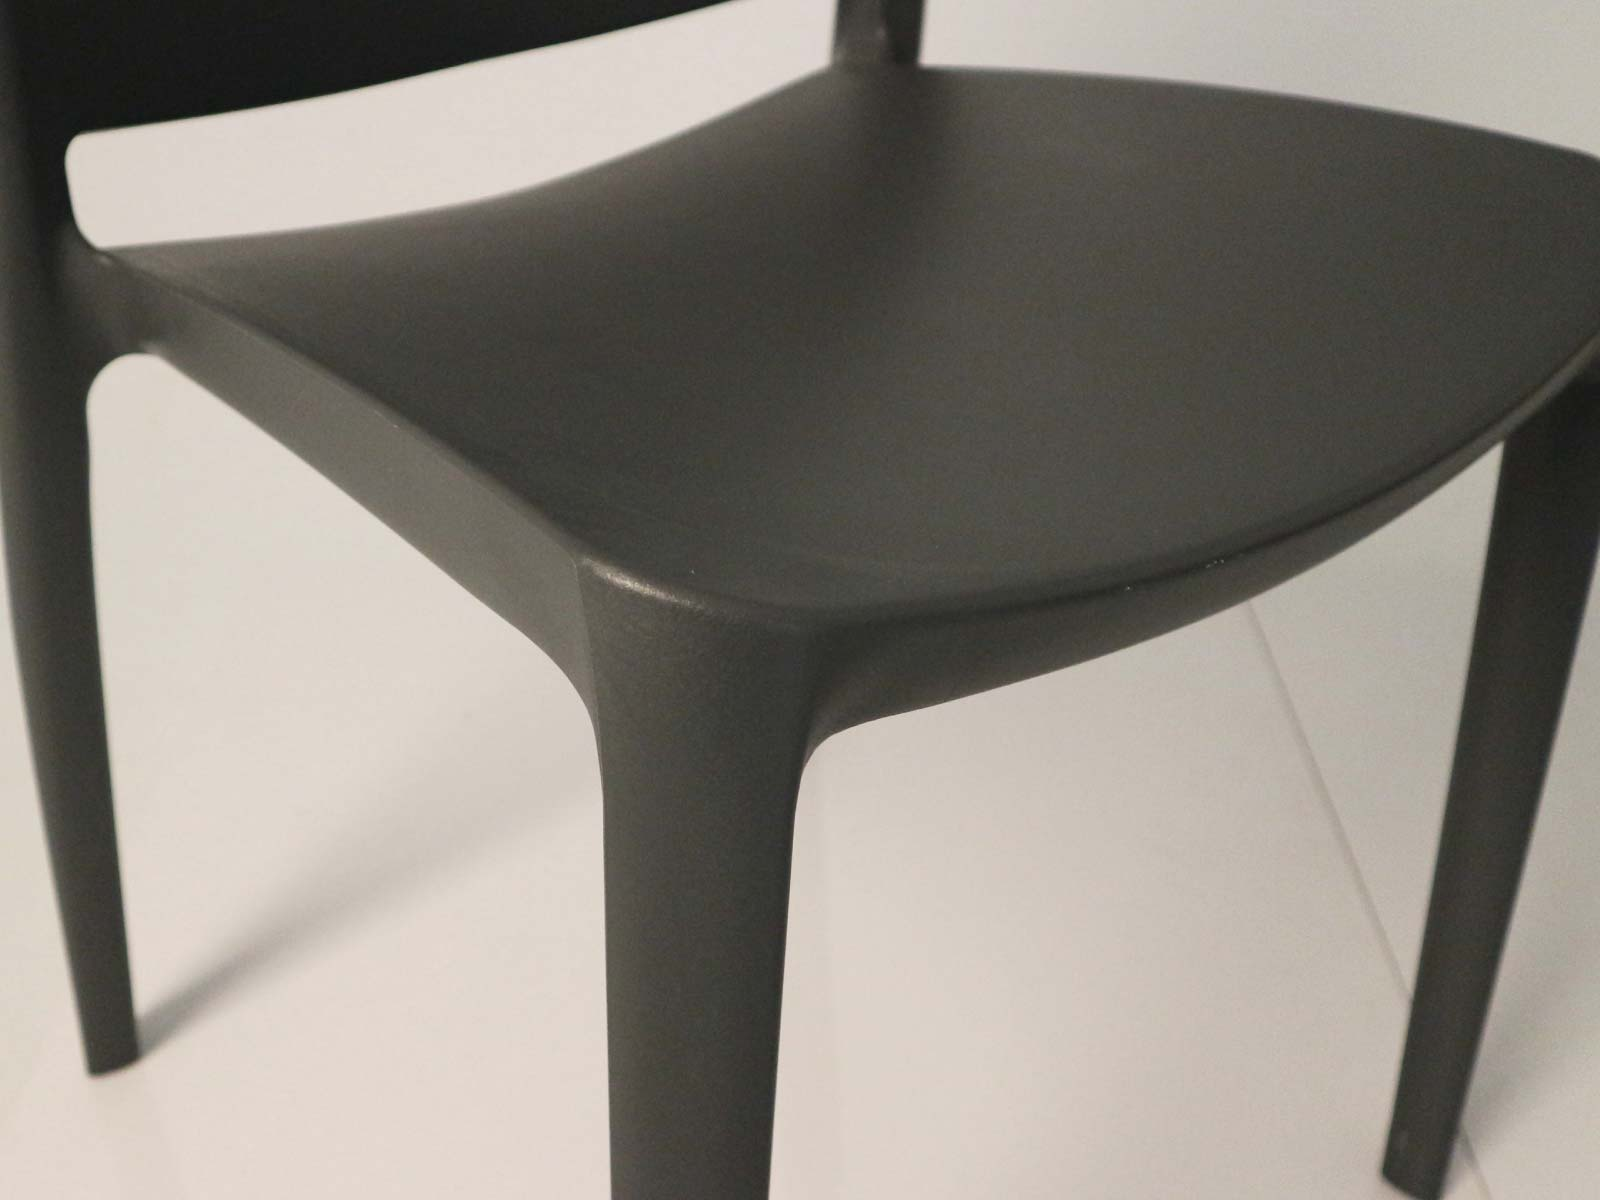 Sensilla Stackable Patio Dining Chair detail